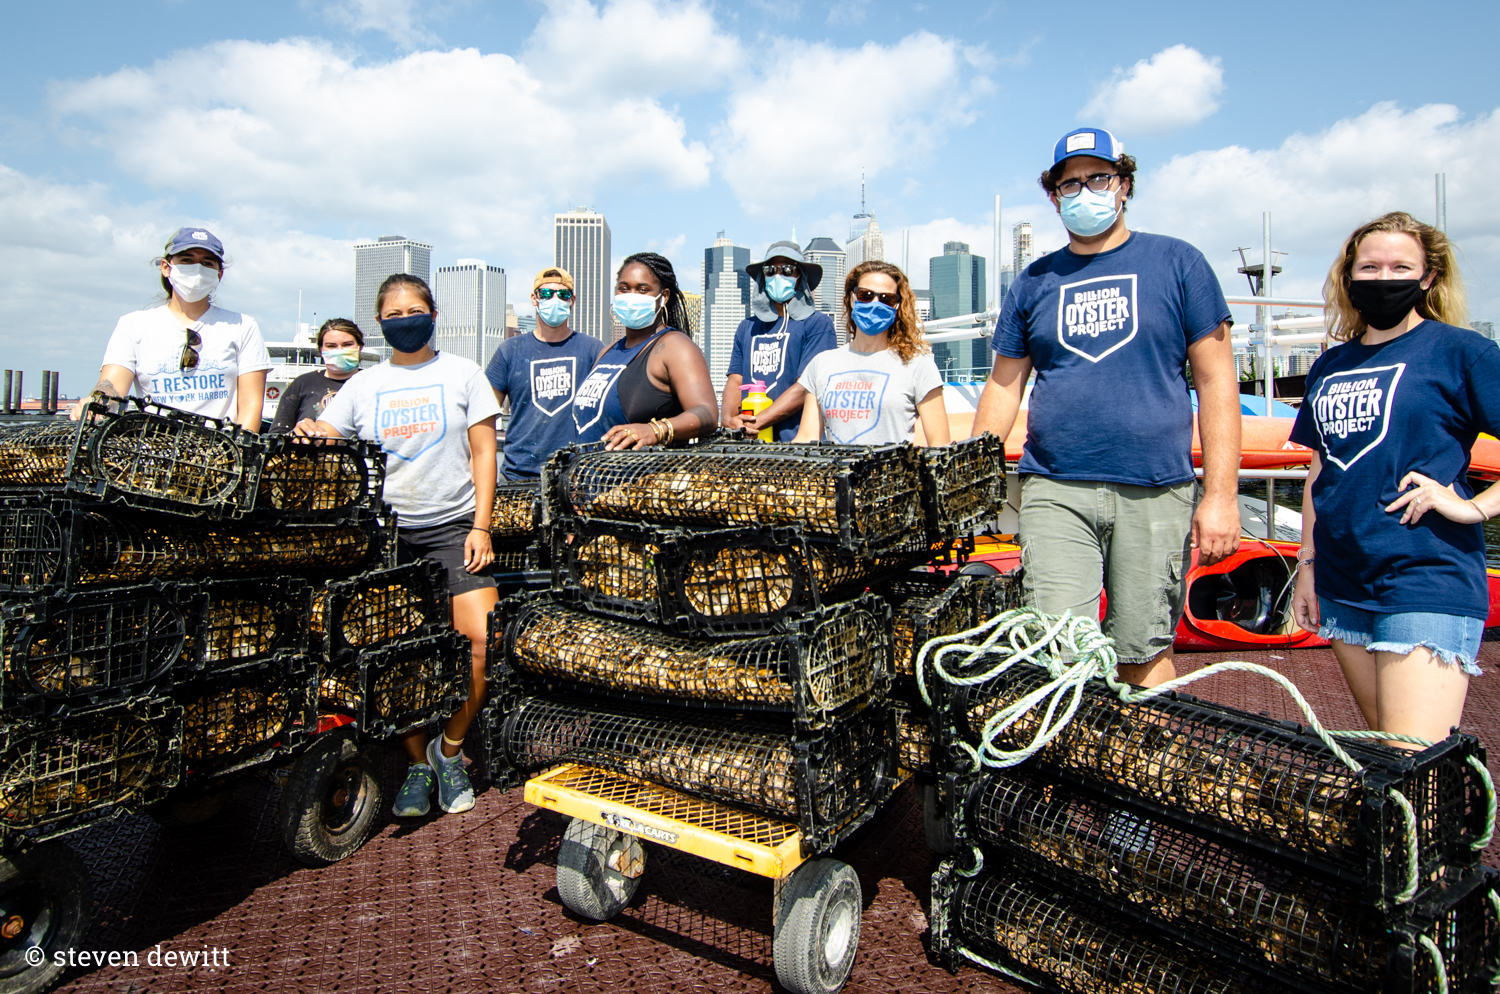 Gropu of people standing around piles of black wire cages filled with oysters